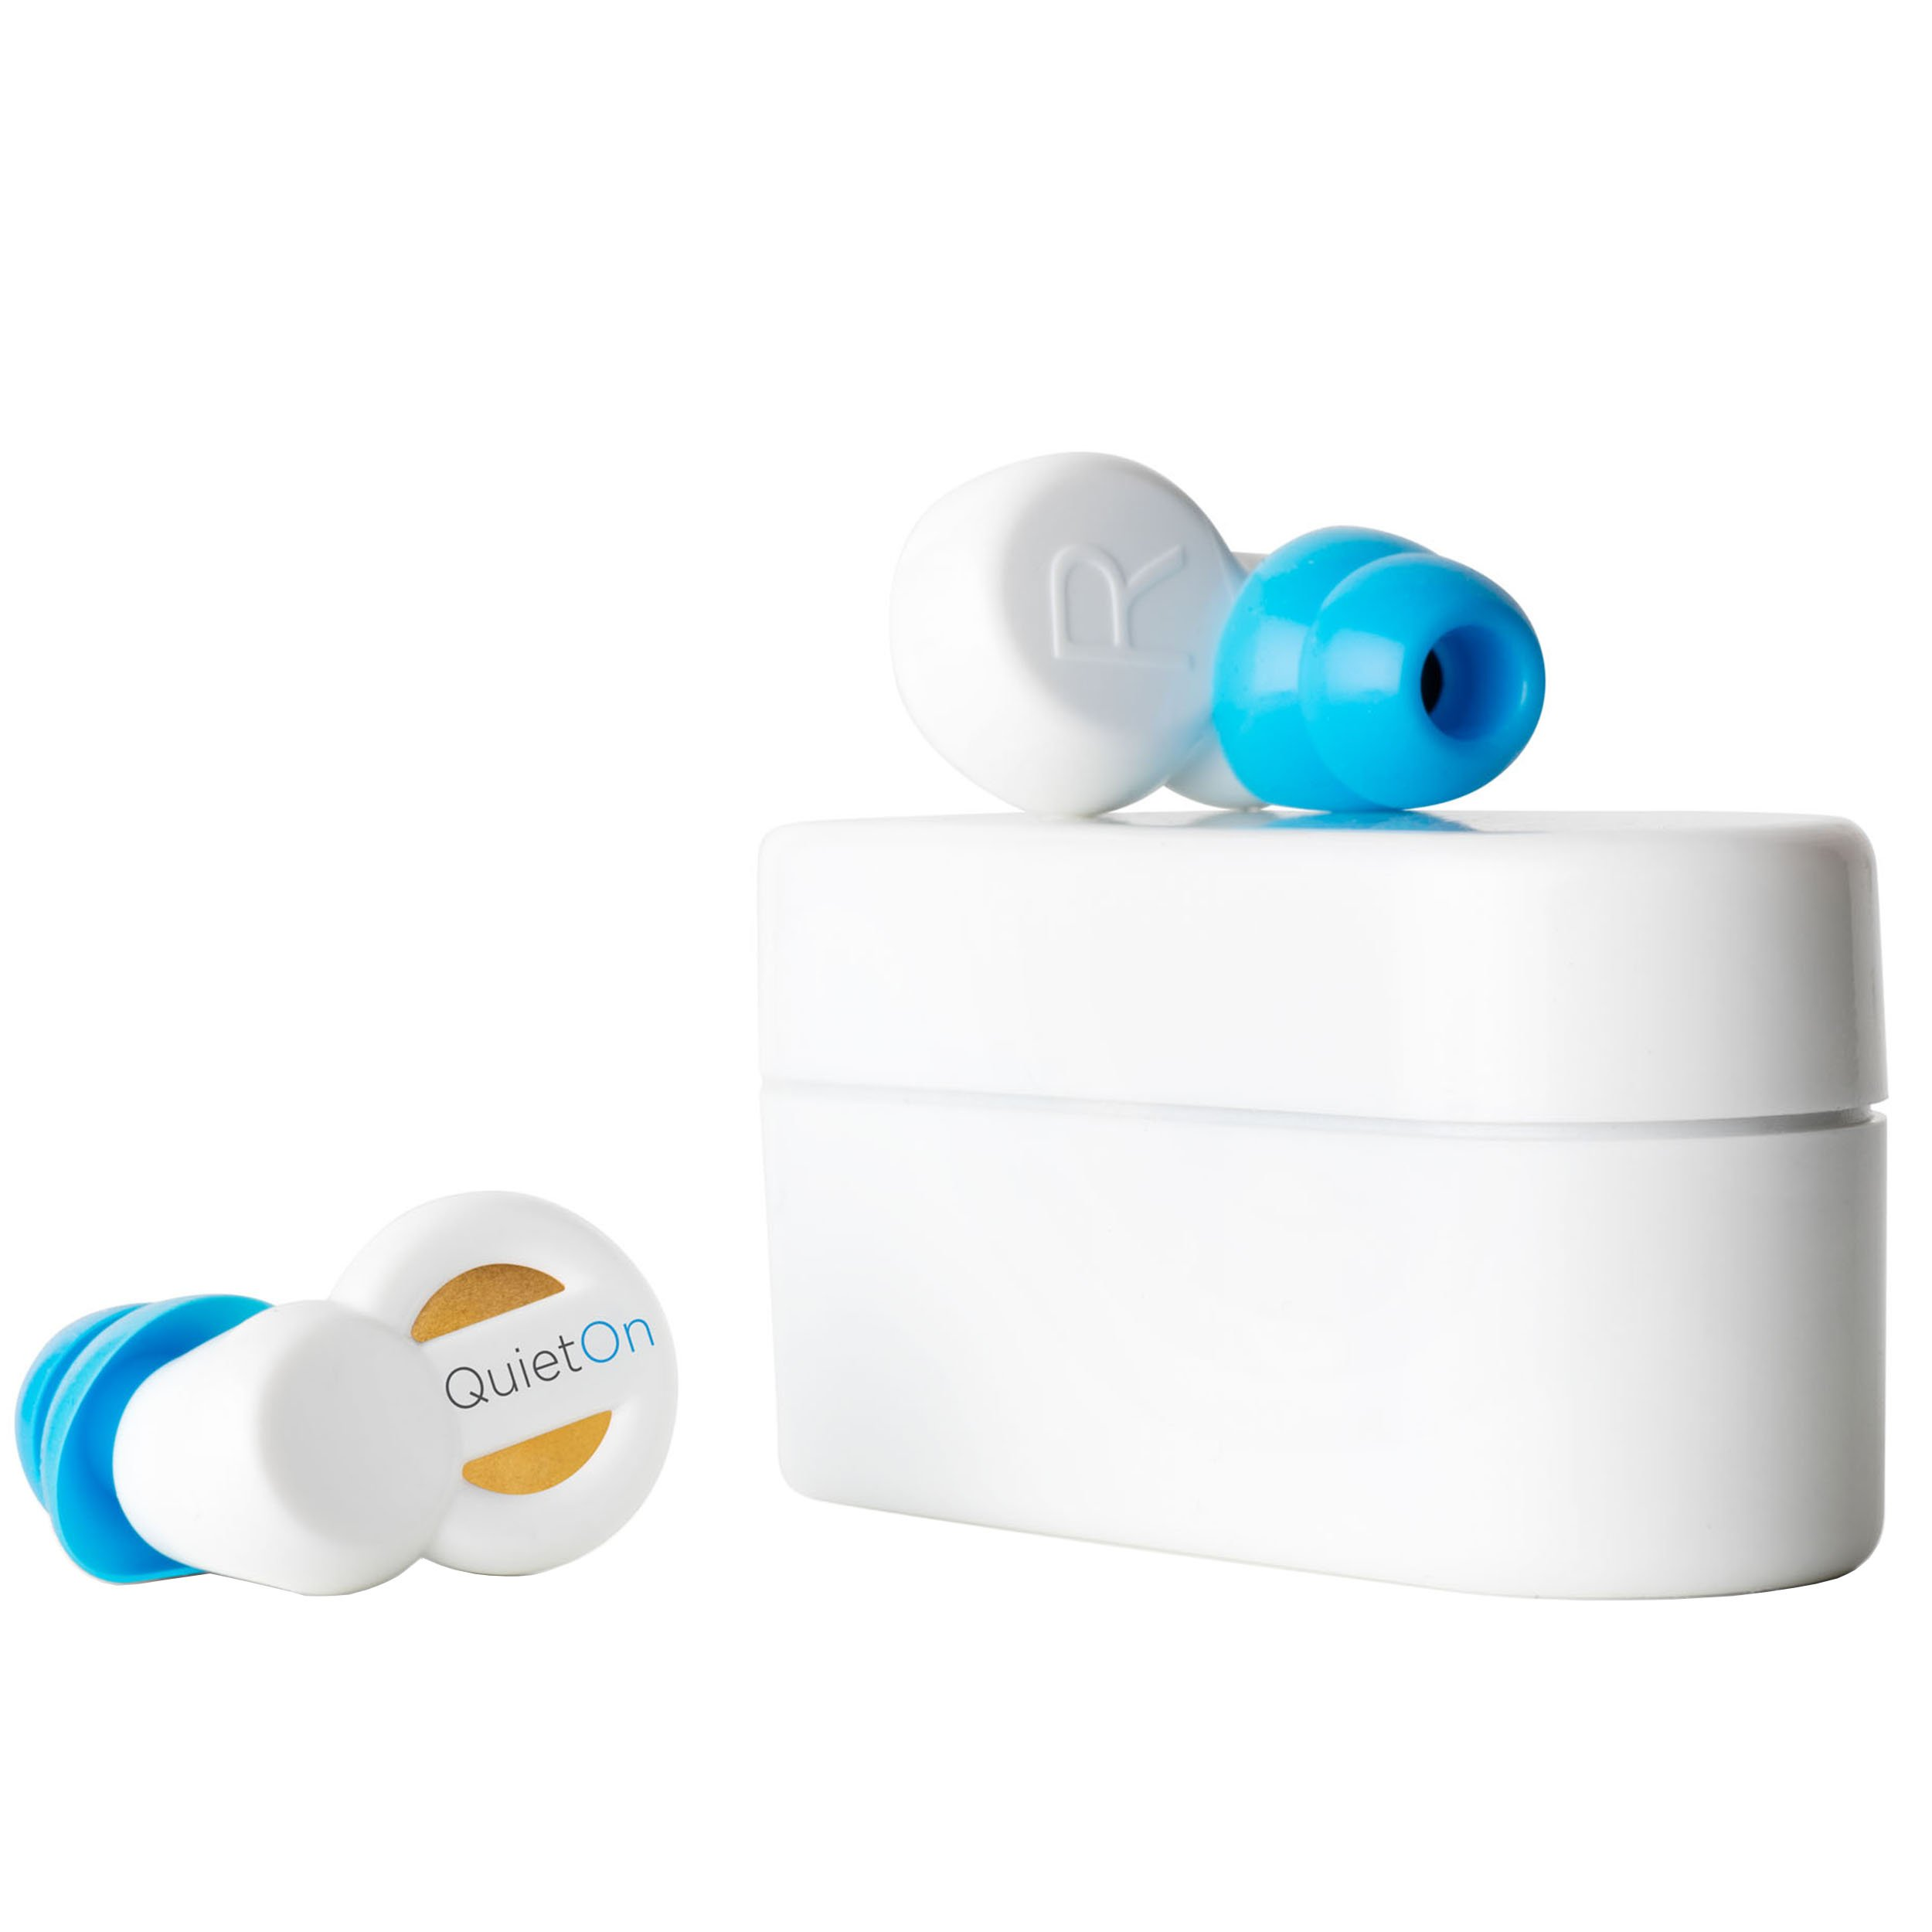 QuietOn Active Noise Cancelling Ear Plugs up to 40dB